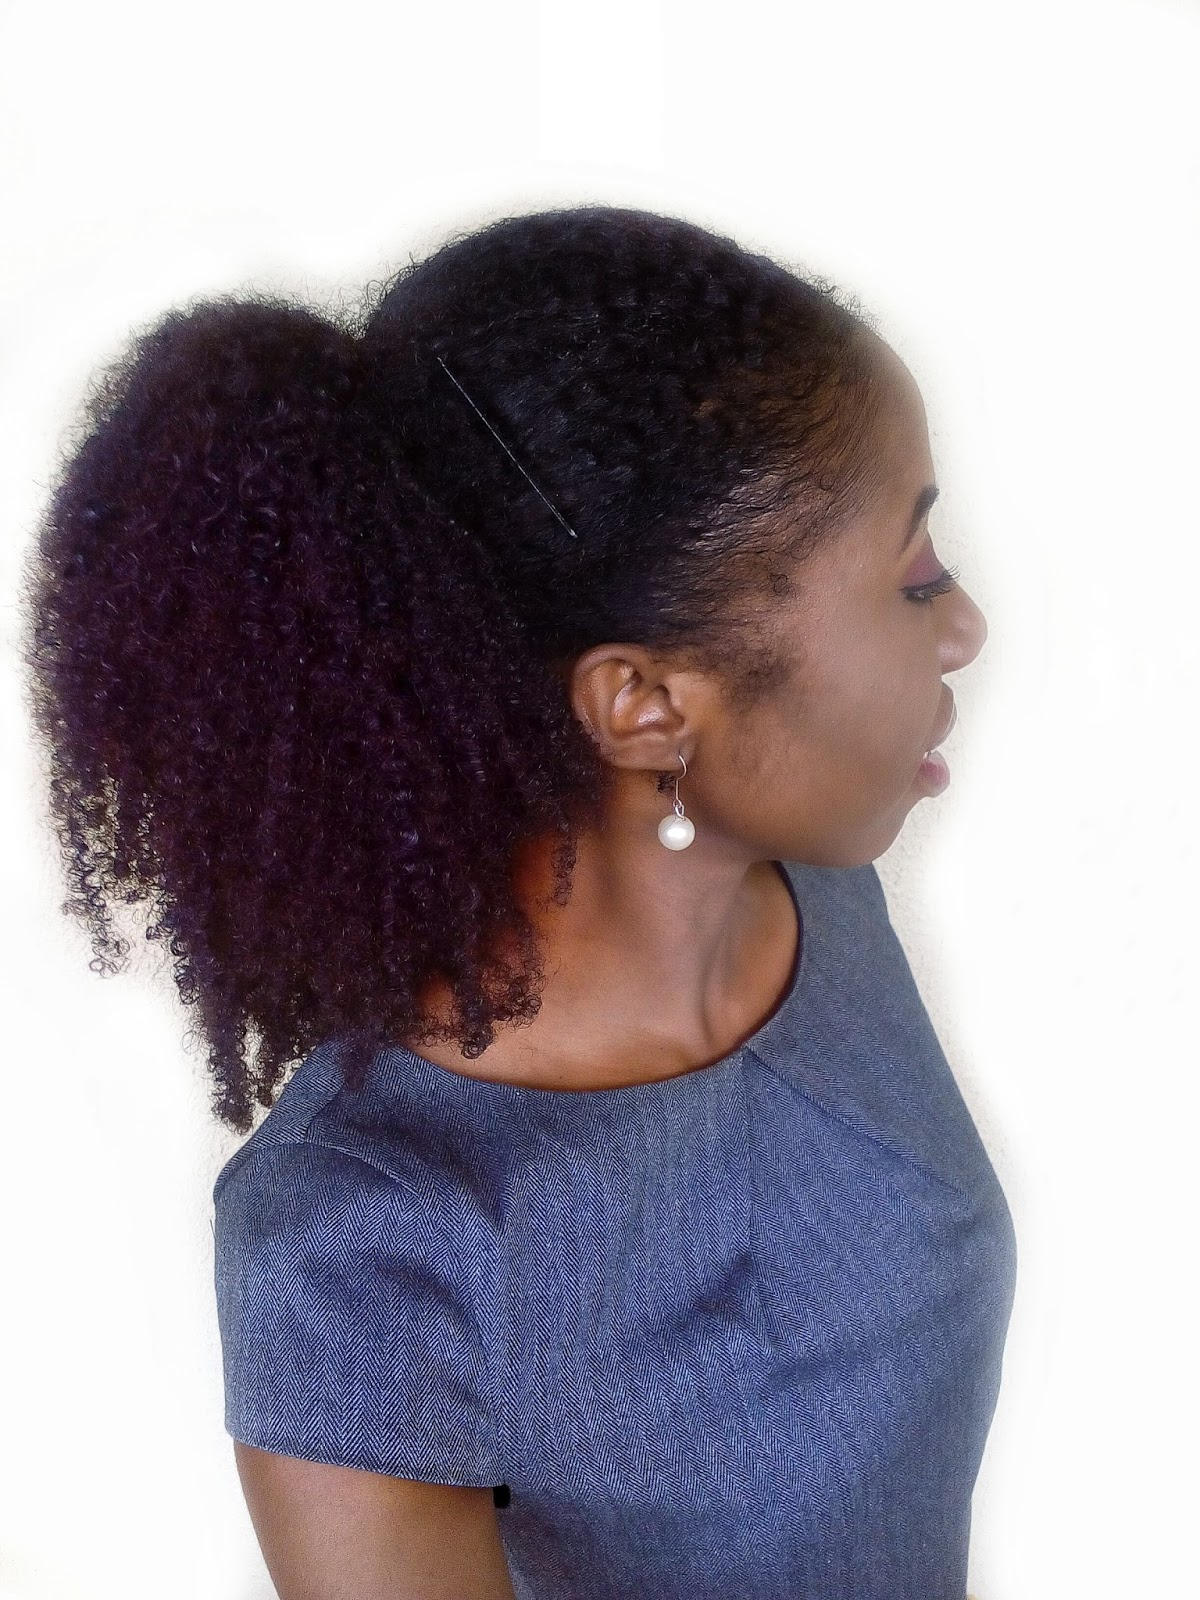 how to take care of fine hair naturally